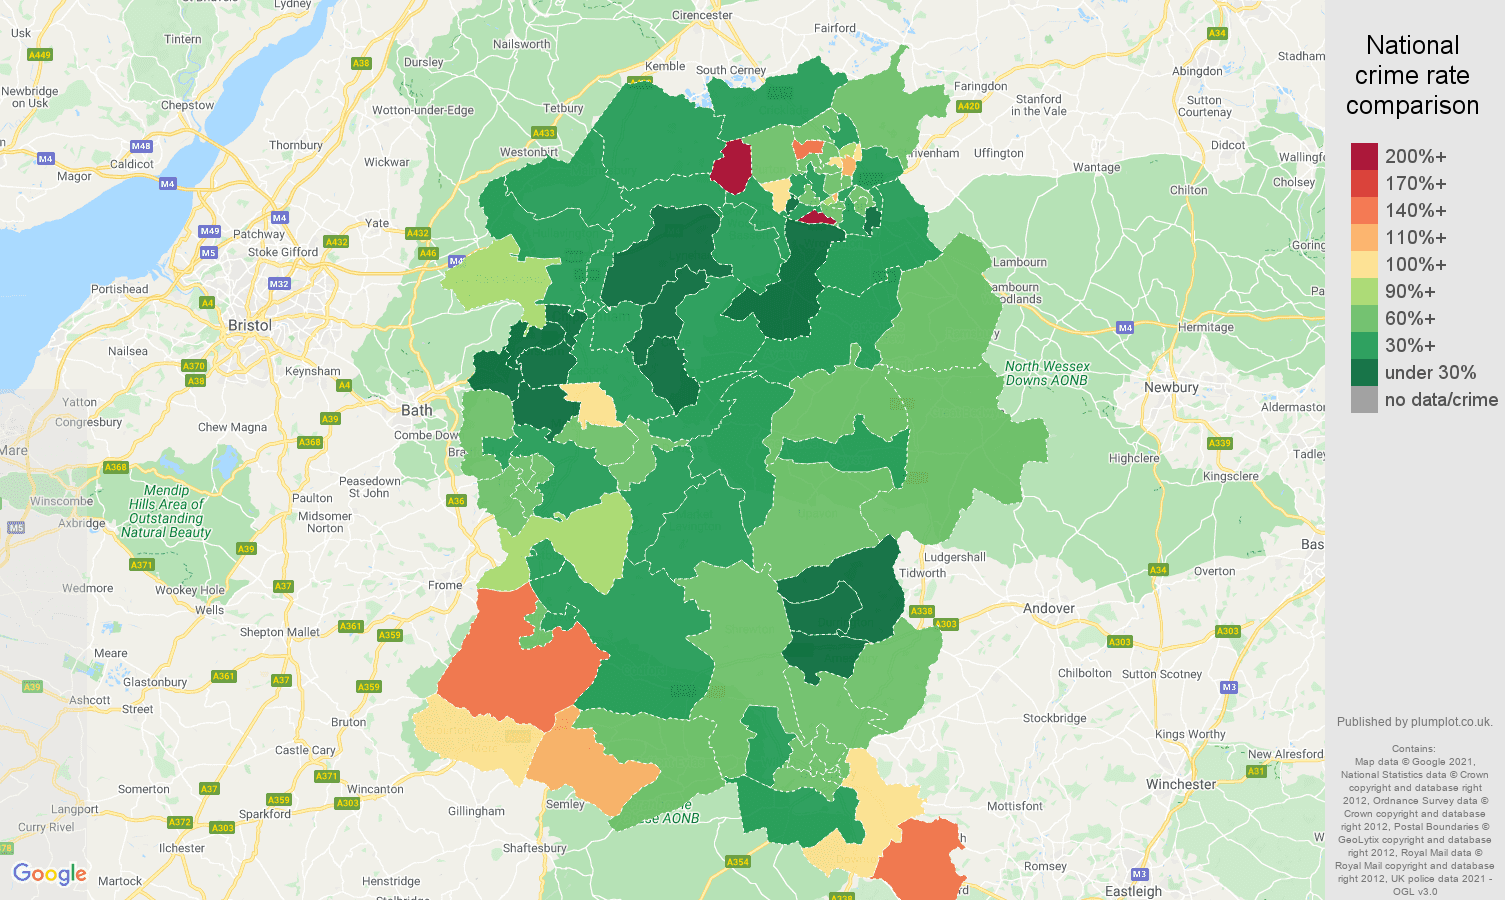 Wiltshire burglary crime rate comparison map